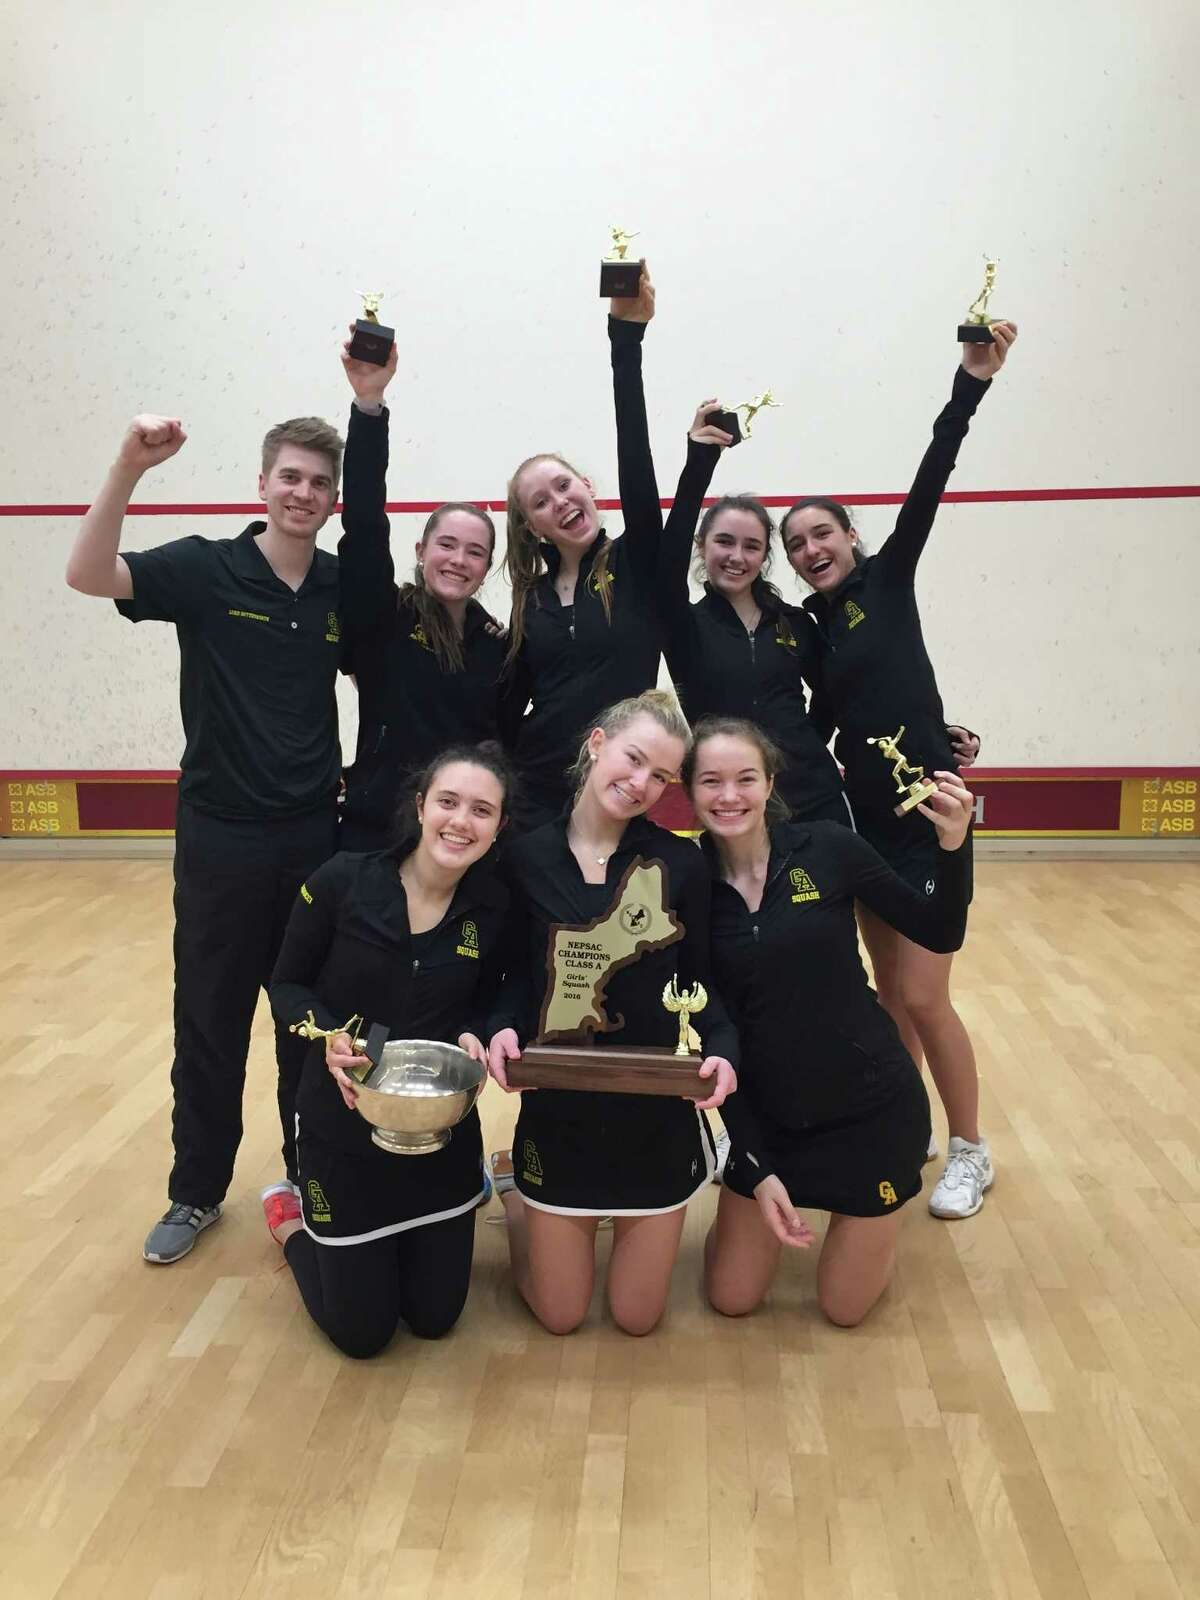 The Greenwich Academy squash team won the New England Interscholastic Squash Association Division A championship for the fifth straight season Sunday at Phillips Exeter Academy.